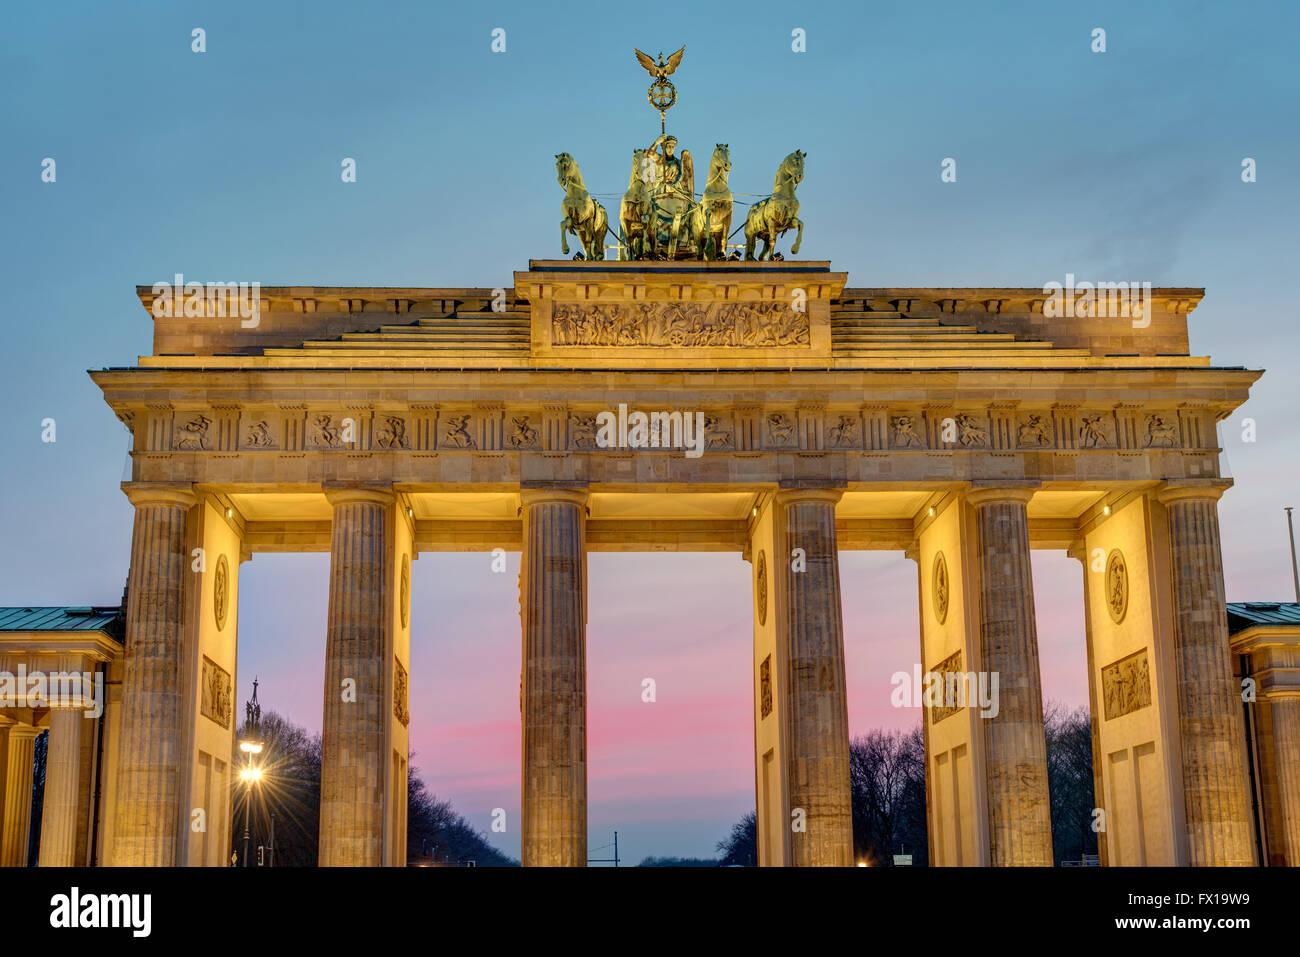 Dawn at the Brandenburger Tor in Berlin, Germany - Stock Image